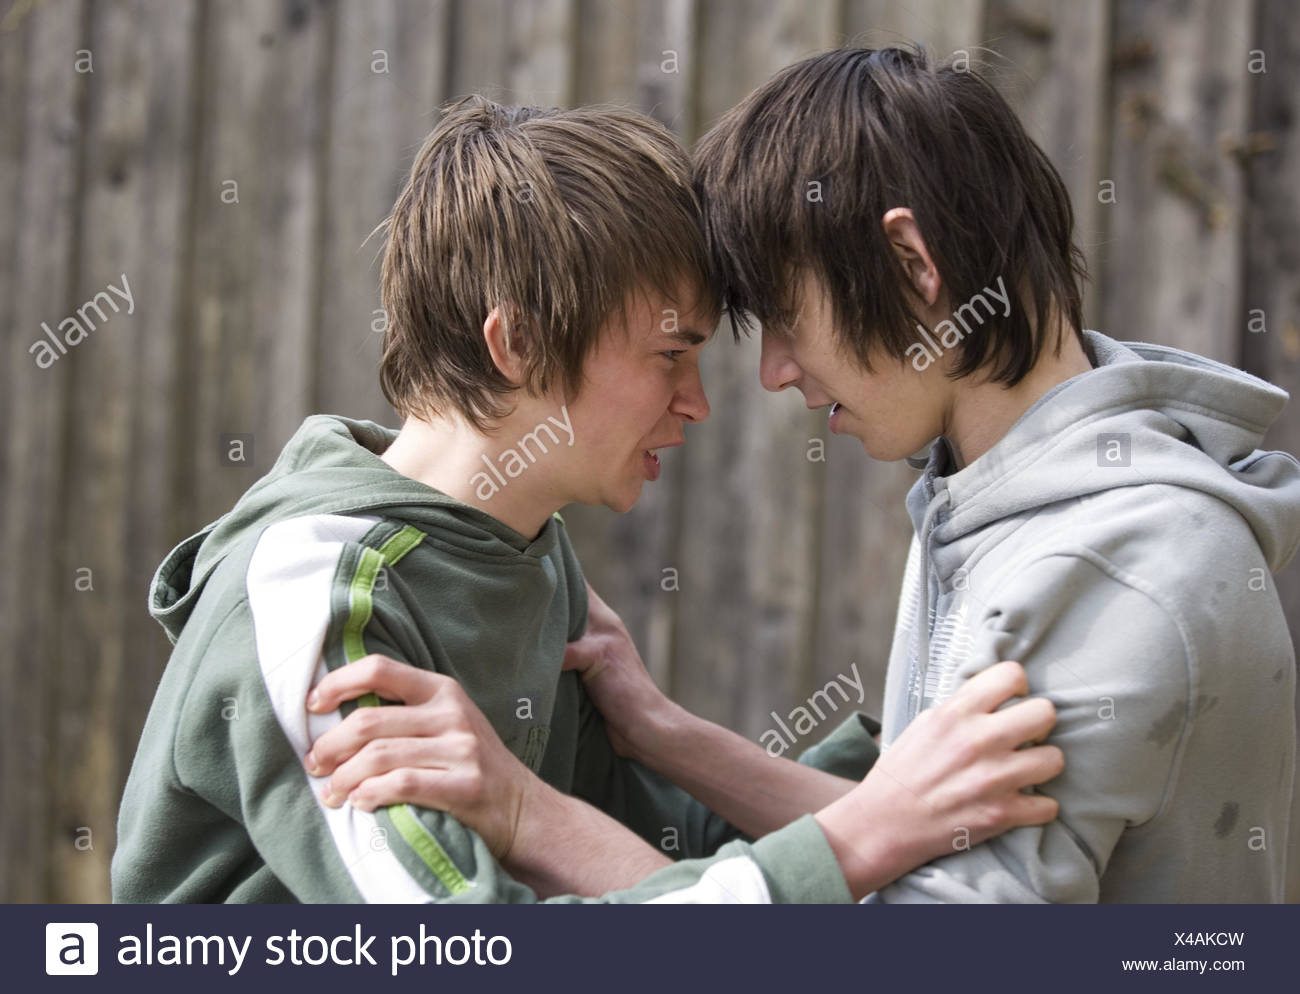 Young persons,aggression,fight,tread,boy,teenager,youth,fury,violent,fight,scuffle,fight,enemies,rivals,rage,fight,fight,outside,power, - Stock Image